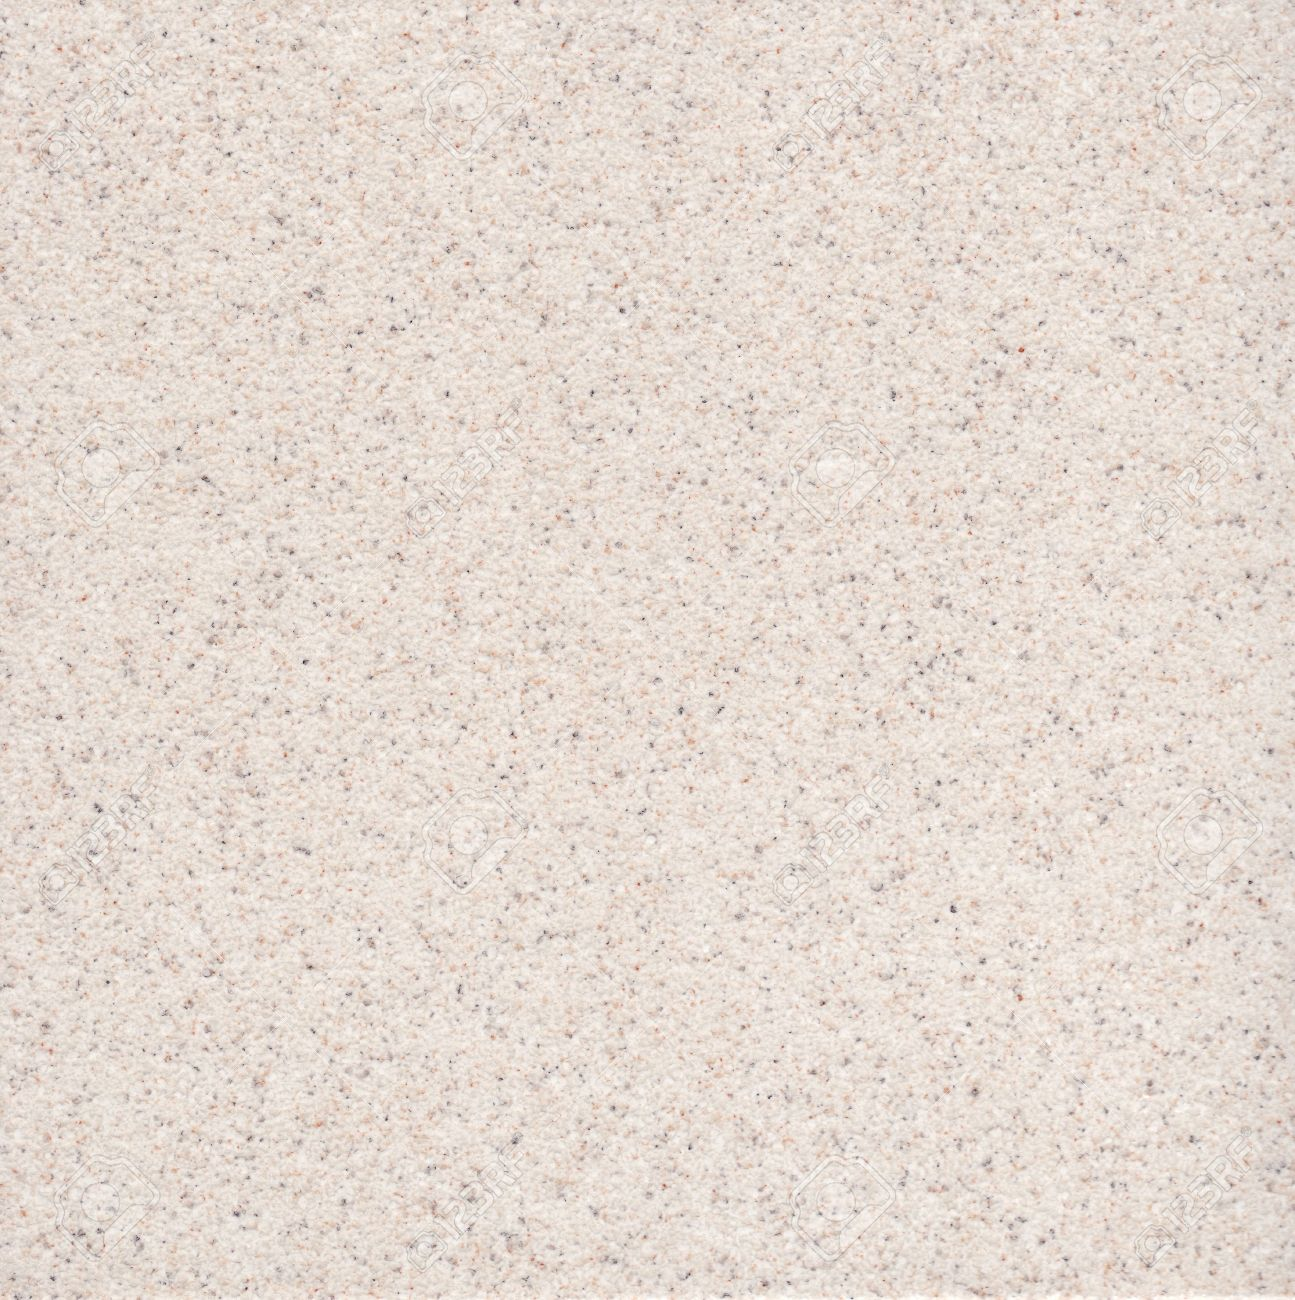 Ceramic Tile Texture Stock Photo Picture And Royalty Free Image